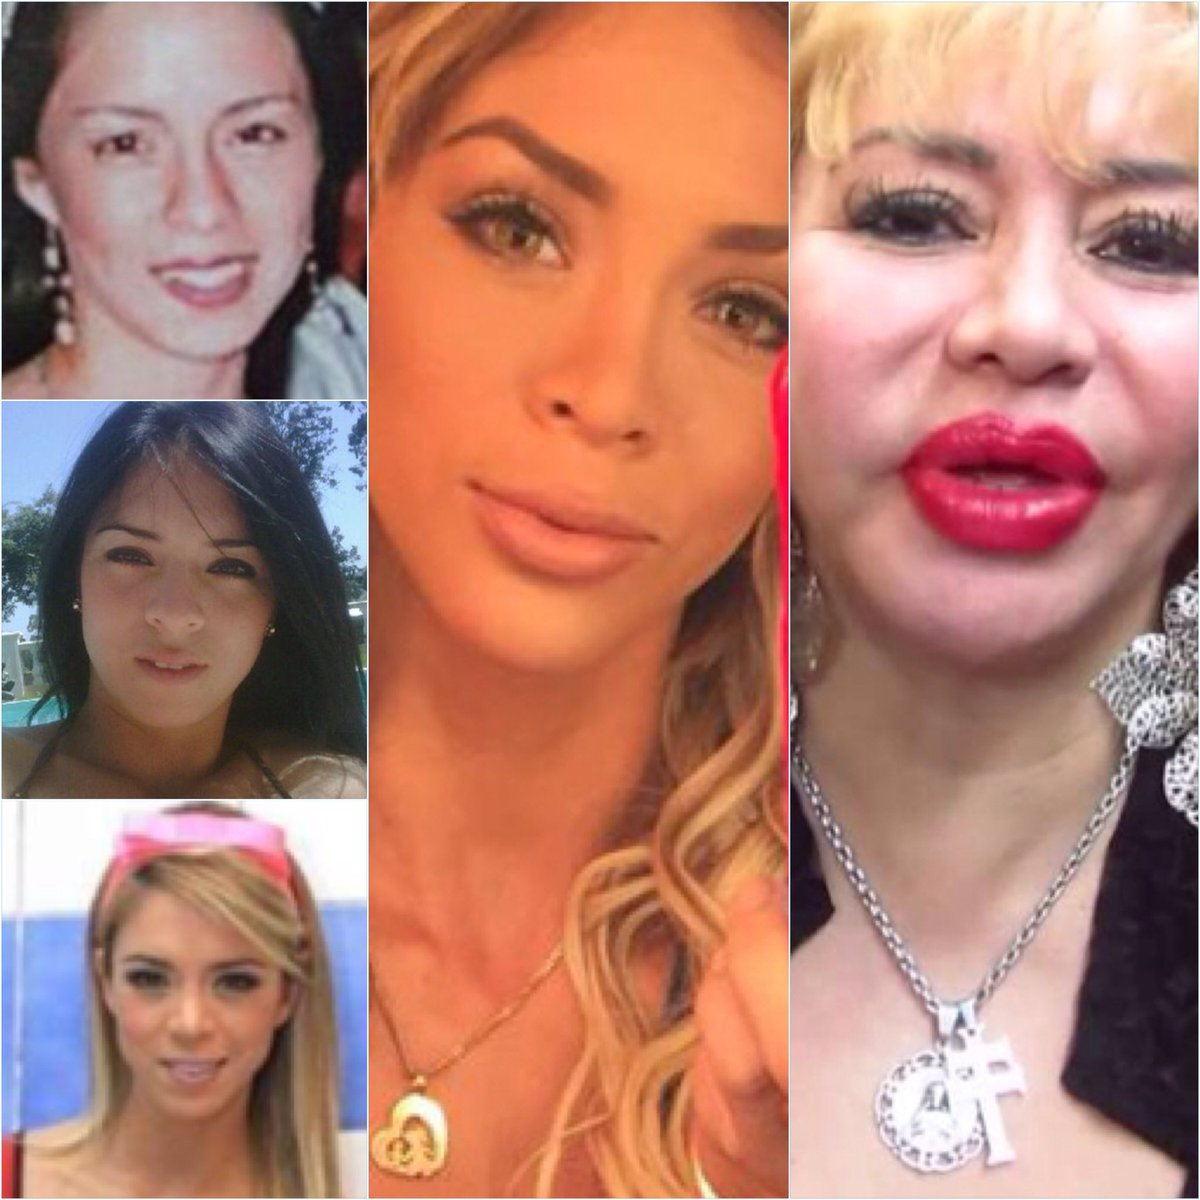 Sheyla rojas antes y despues the image for Muebles restaurados antes y despues